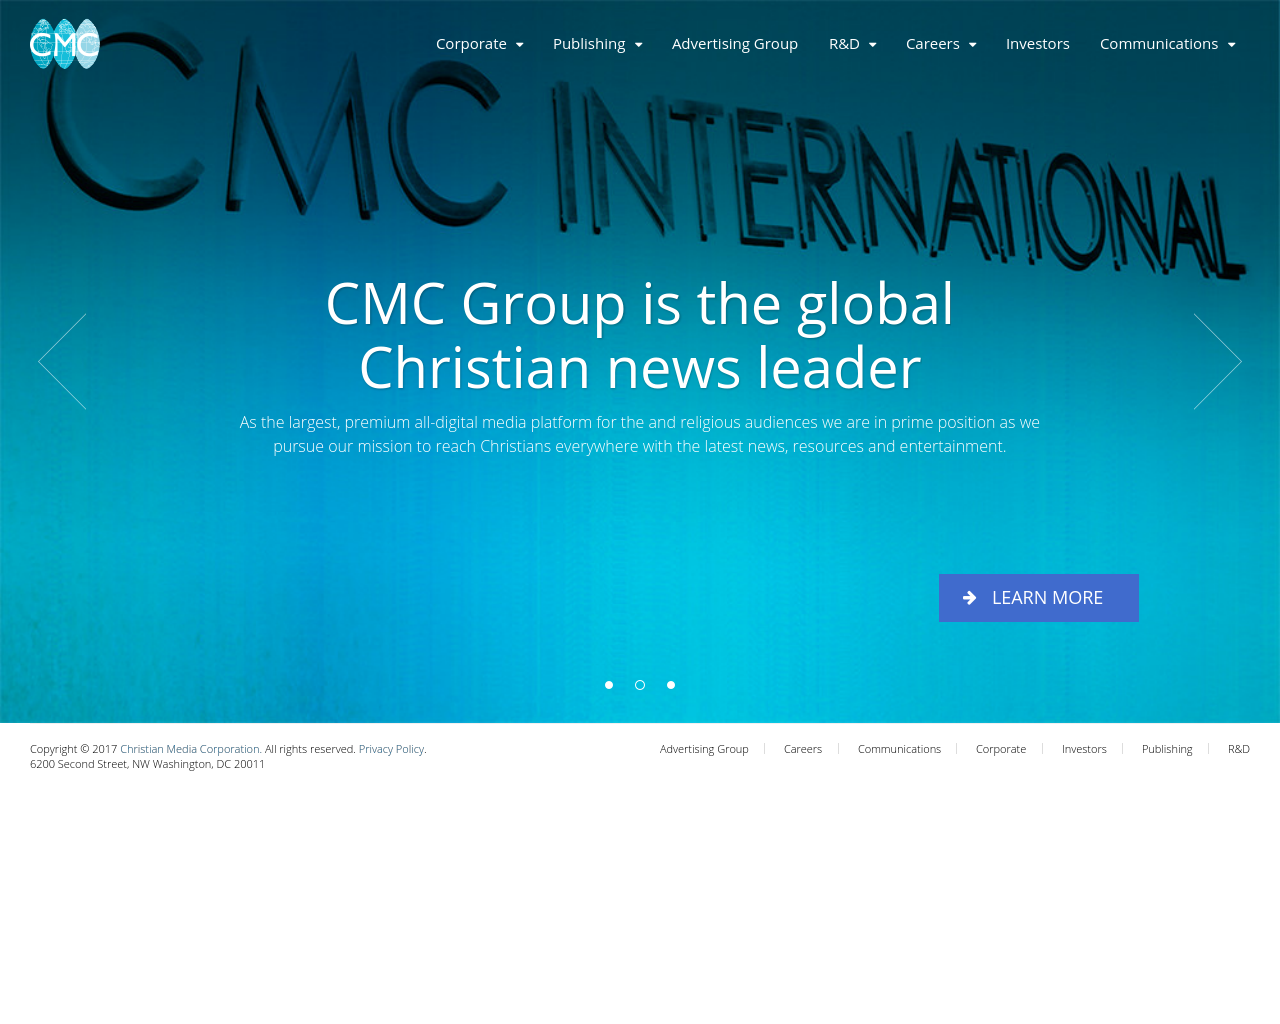 CMC-Advertising-Group-Advertising-Reviews-Pricing